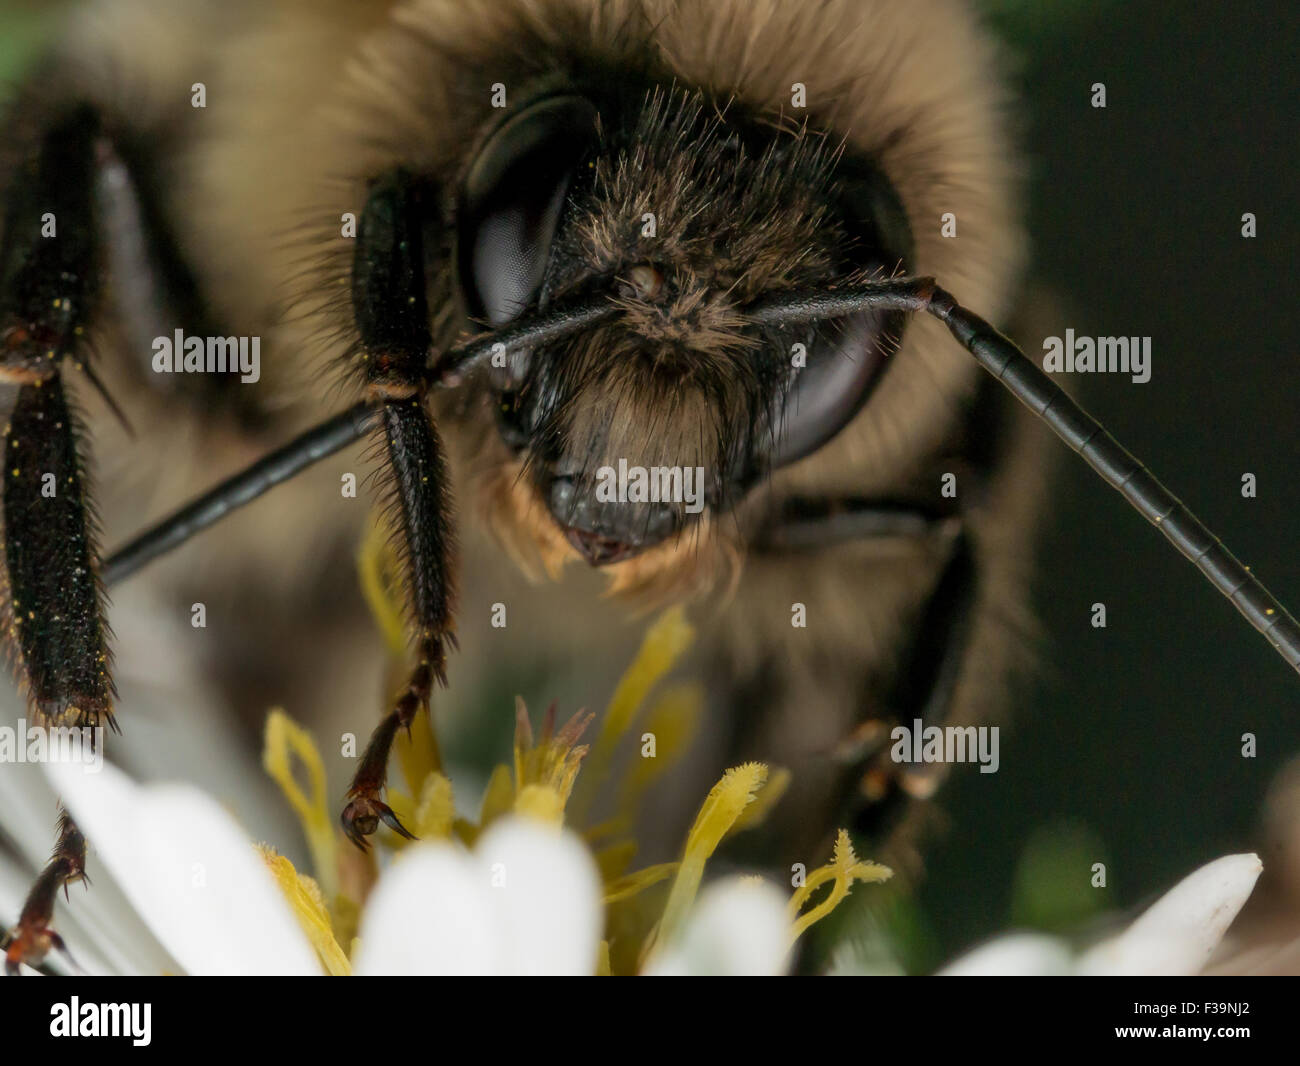 Bumble Bee Wipes Antenna - Stock Image